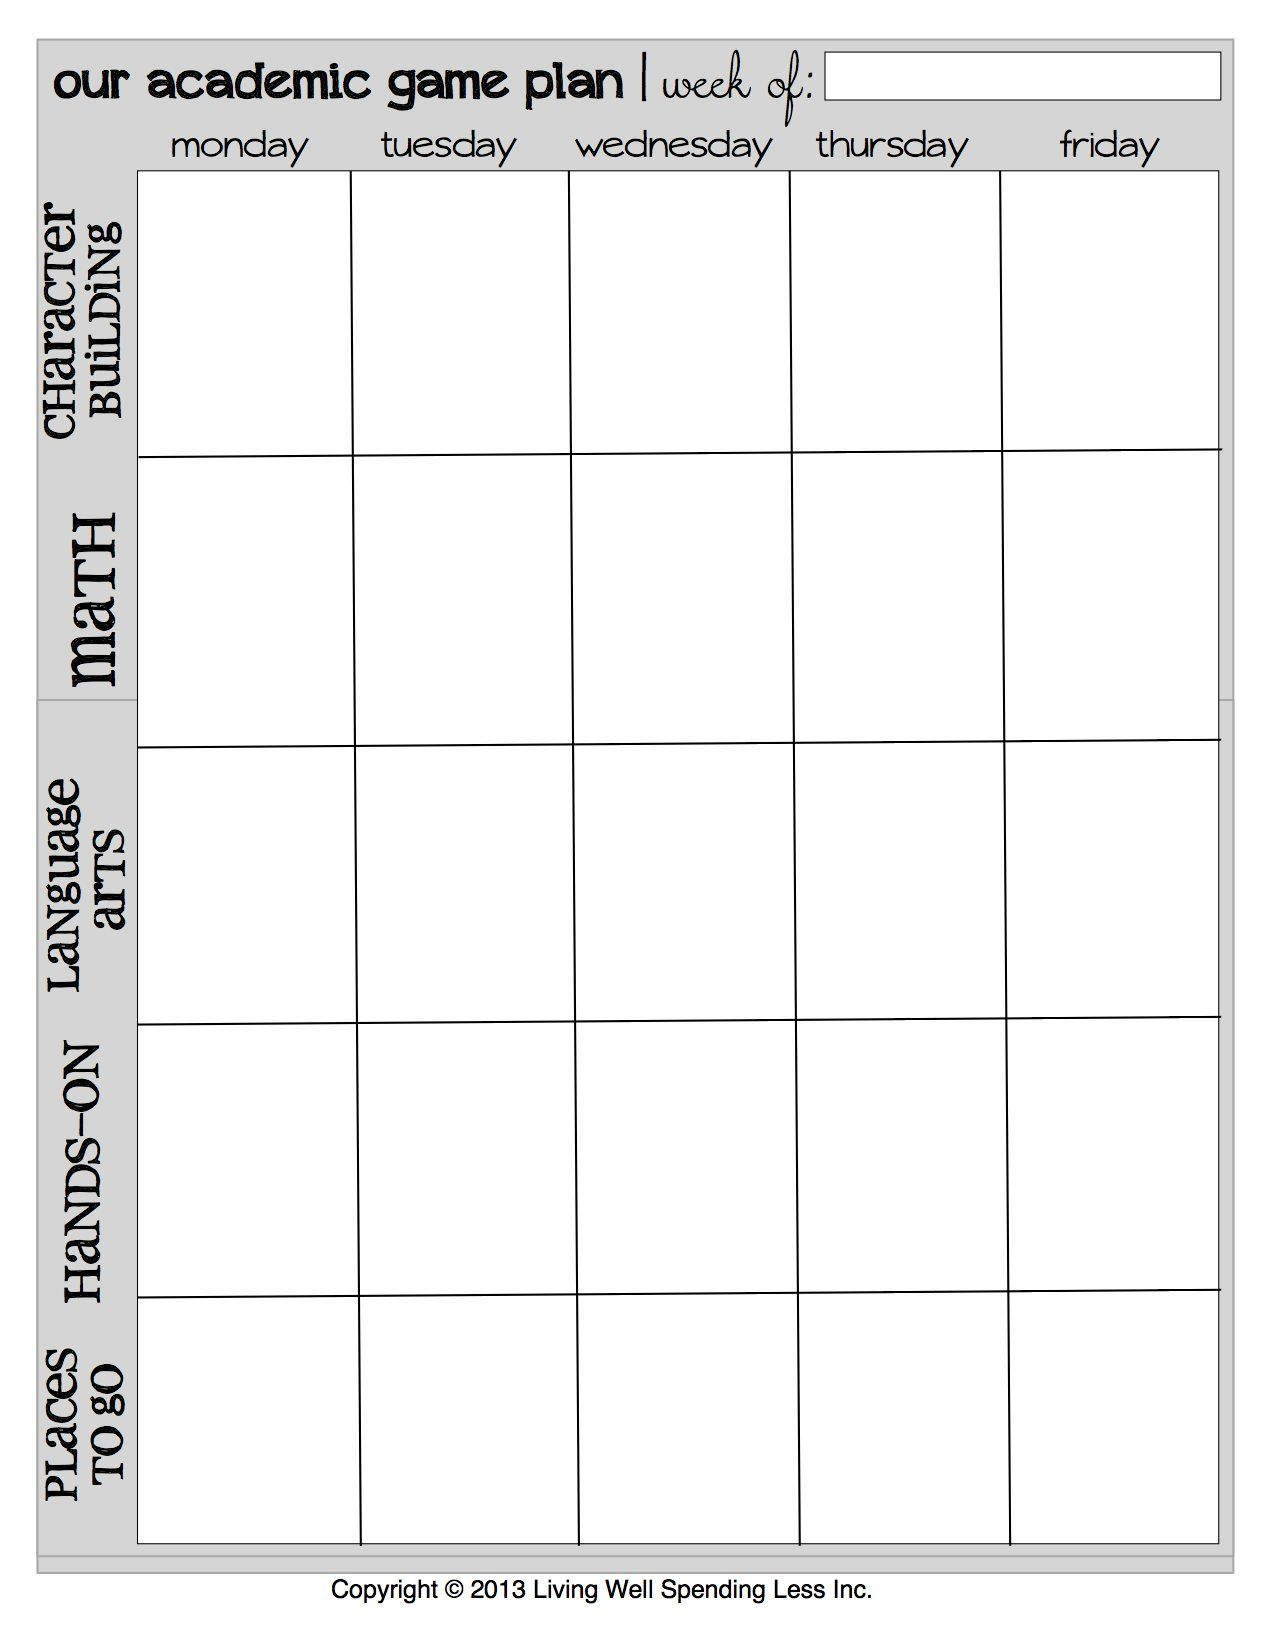 Printable Week Calendar | Free Printable Homeschool Planner within Printable Week Calendar